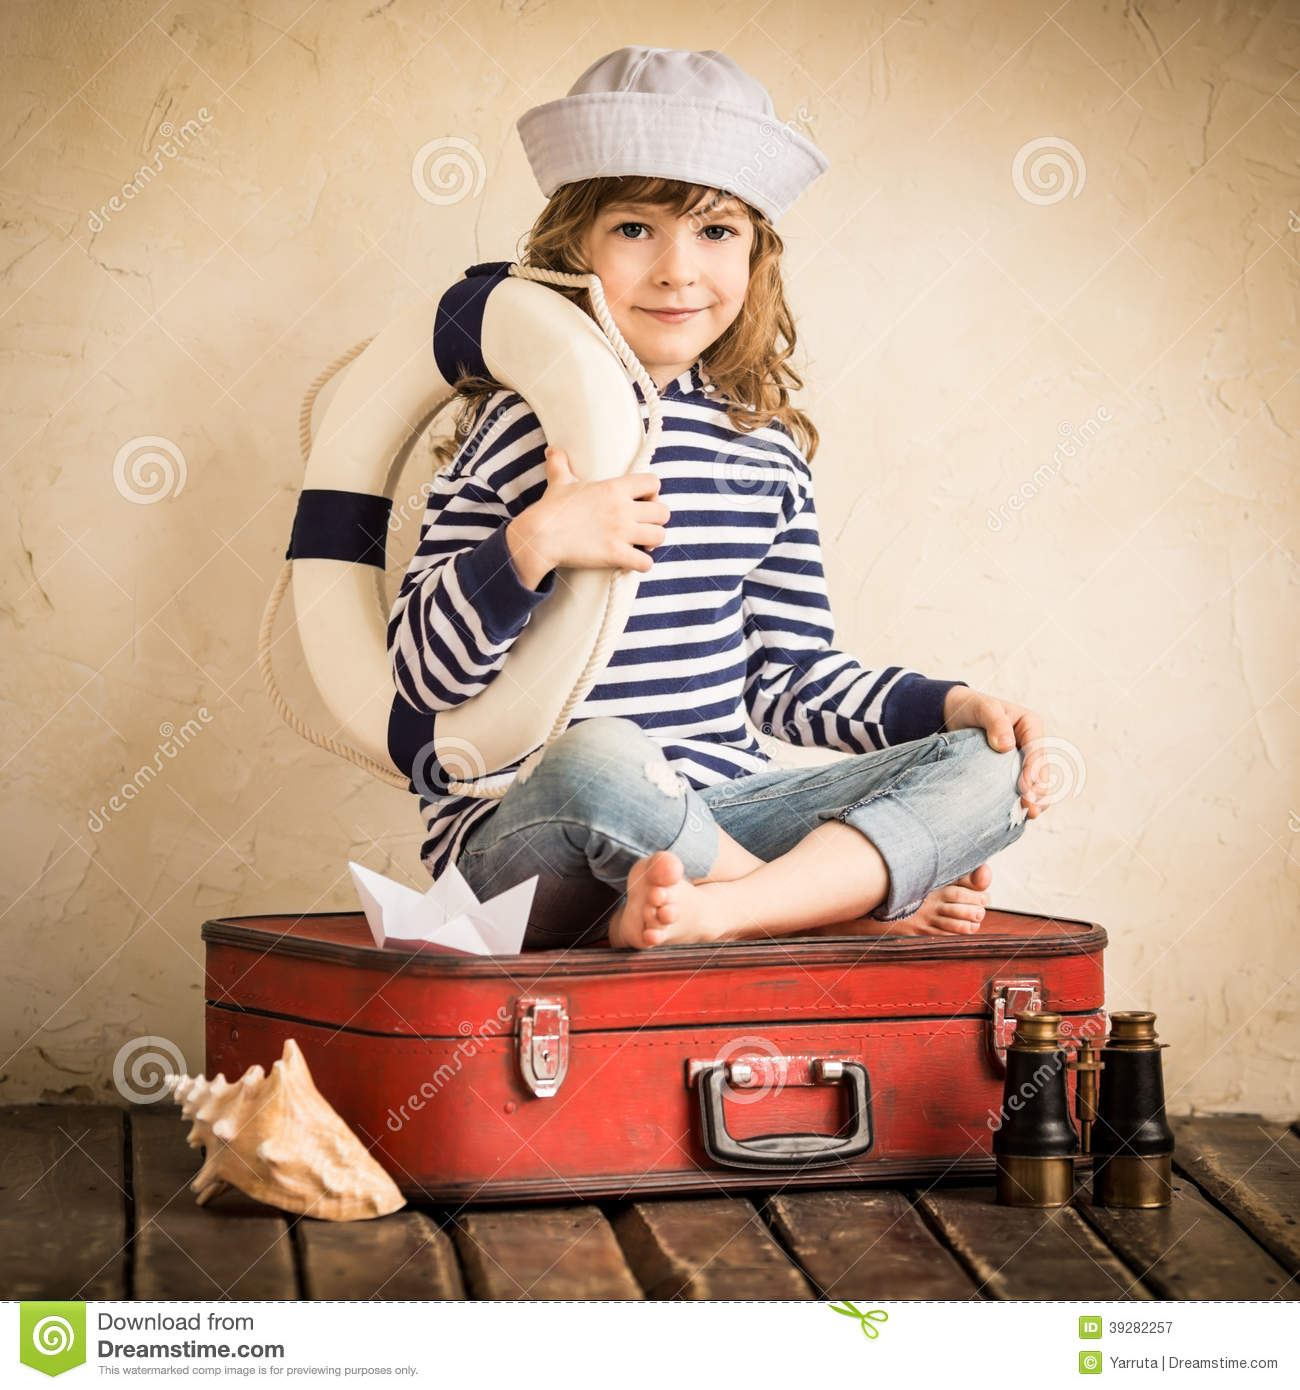 Adventure stock image. Image of cruise, concept, paper - 39282257